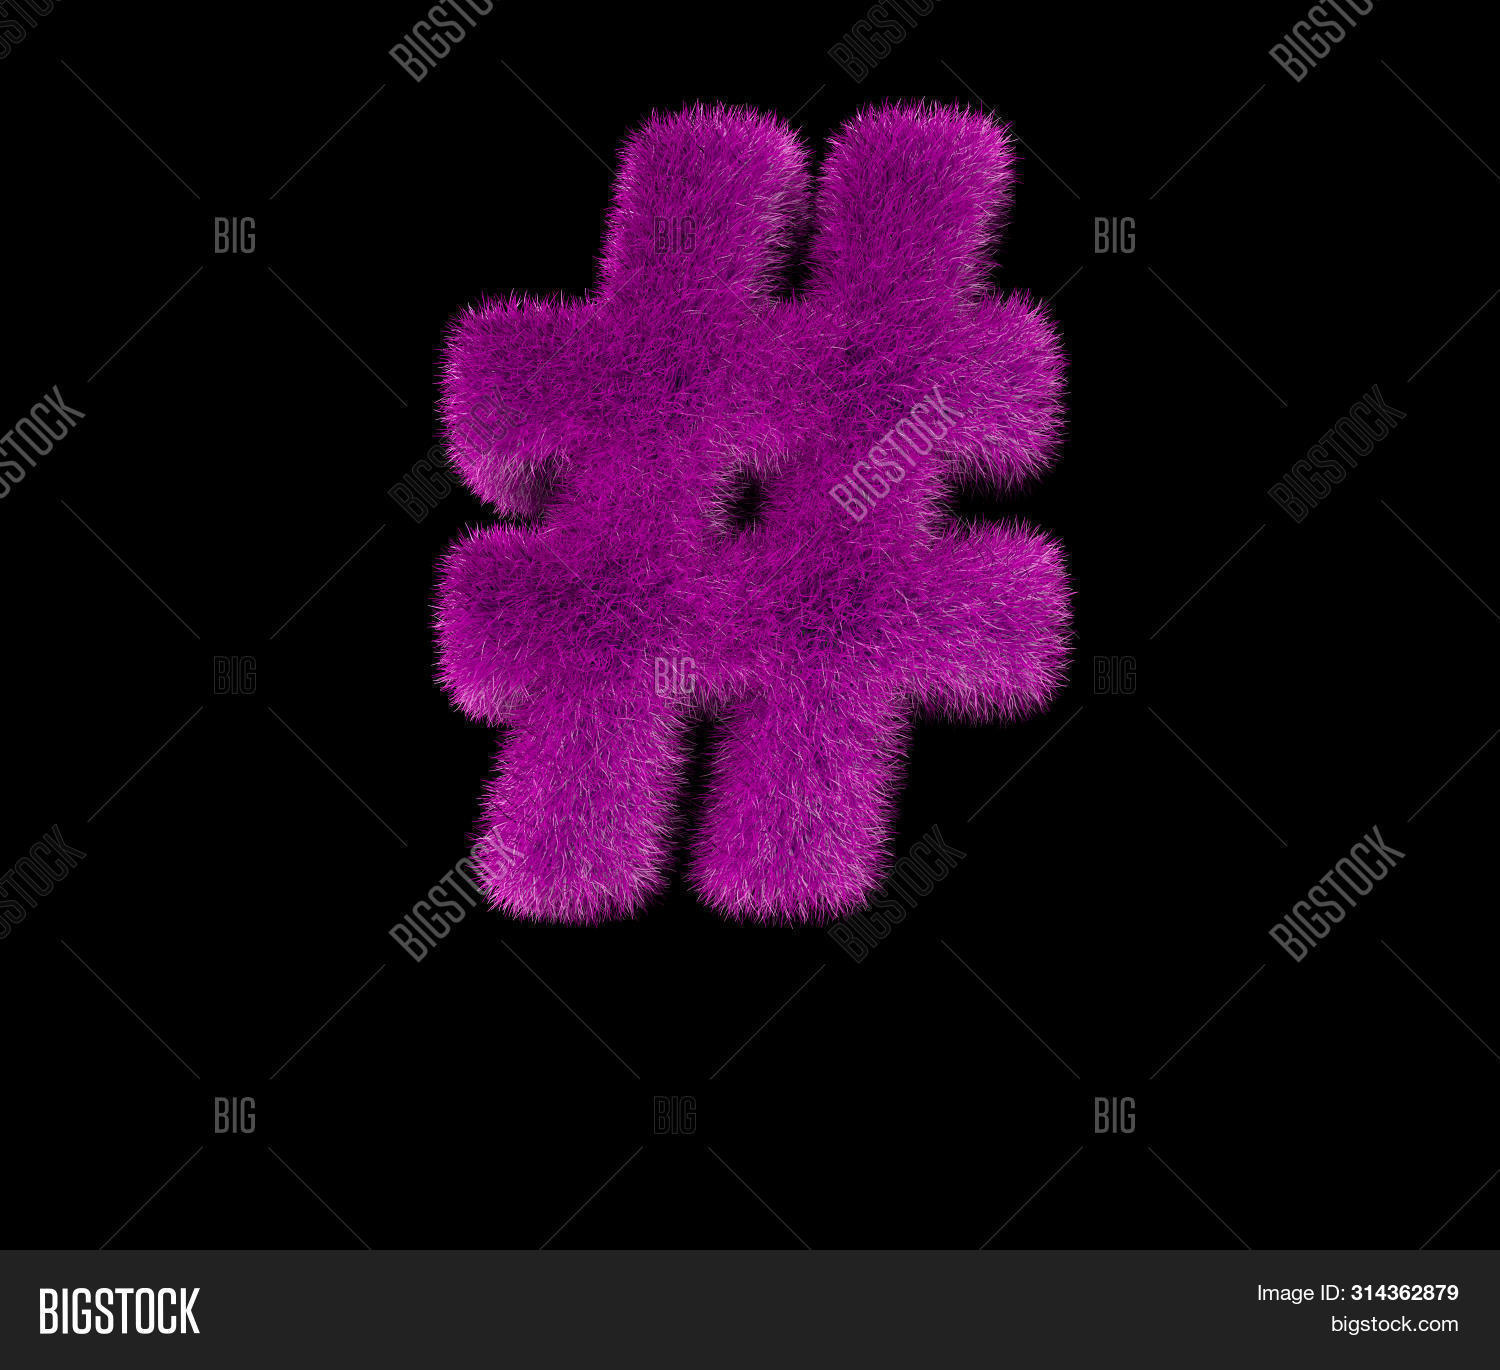 3d,abstract,alphabet,background,beautiful,beauty,black,comical,concept,conceptual,design,effect,font,funny,fur,furry,glamorous,glamour,gorgeous,hairs,hairy,hash,hashtag,illustration,isolated,letters,lovely,luxury,model,nice,number,pilose,pilous,pink,purple,rendering,ridiculous,shaggy,soft,stylish,sweet,symbol,tag,texture,wool,wooly